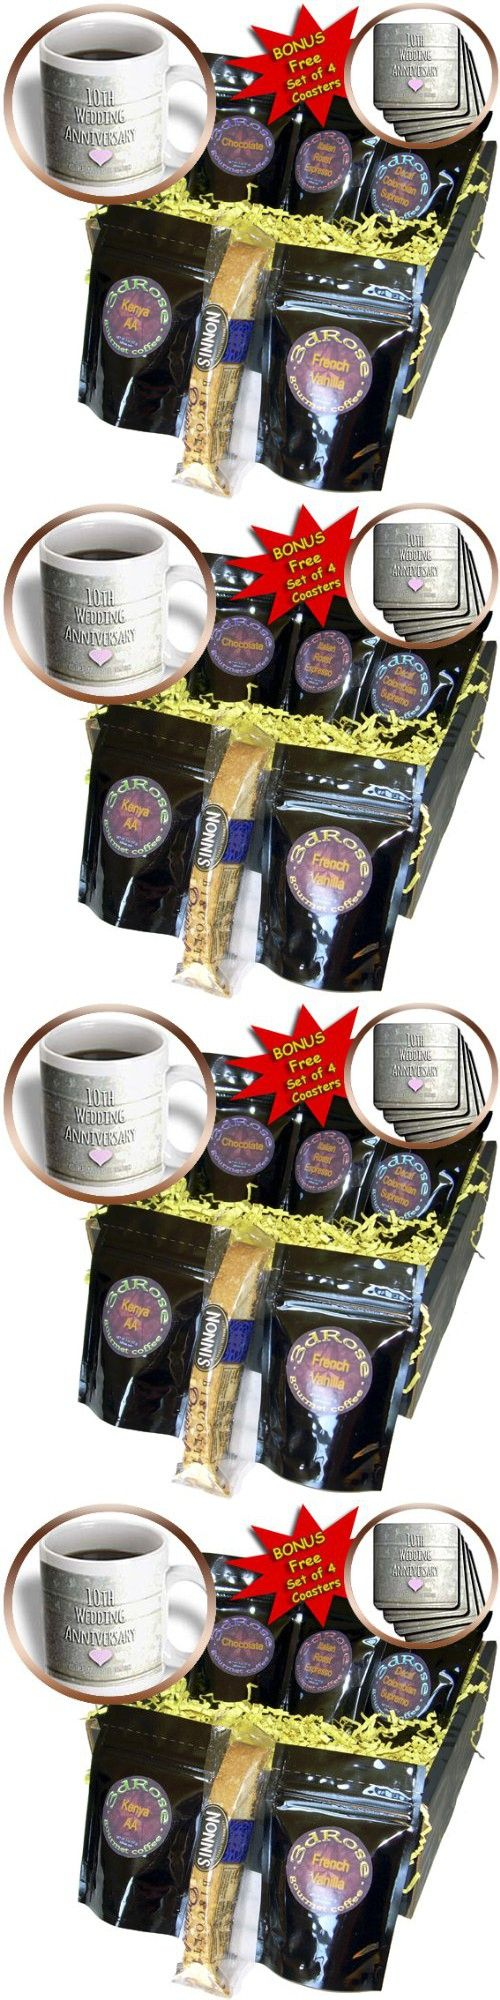 InspirationzStore Occasions - 10th Wedding Anniversary gift - Tin celebrating 10 years together - tenth anniversaries ten yrs - Coffee Gift Baskets - Coffee Gift Basket (cgb_154441_1)